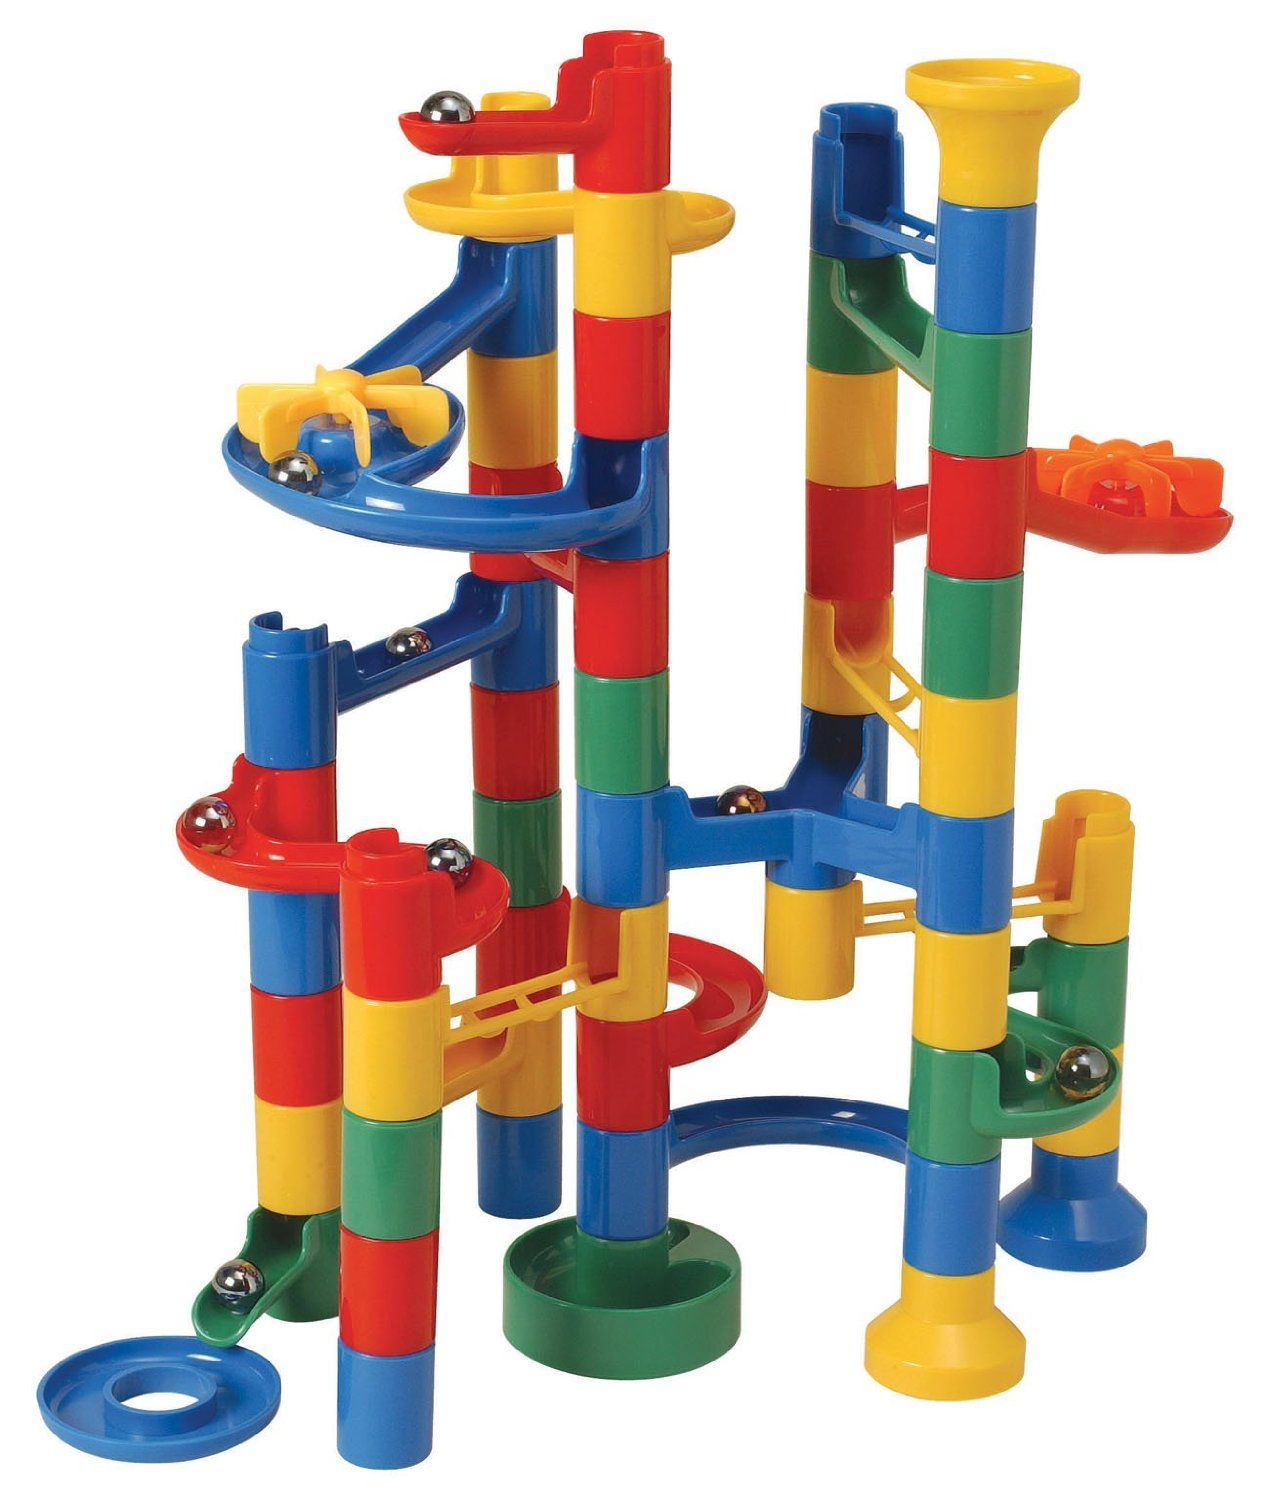 The plastic marble run game that I used to own. Marble